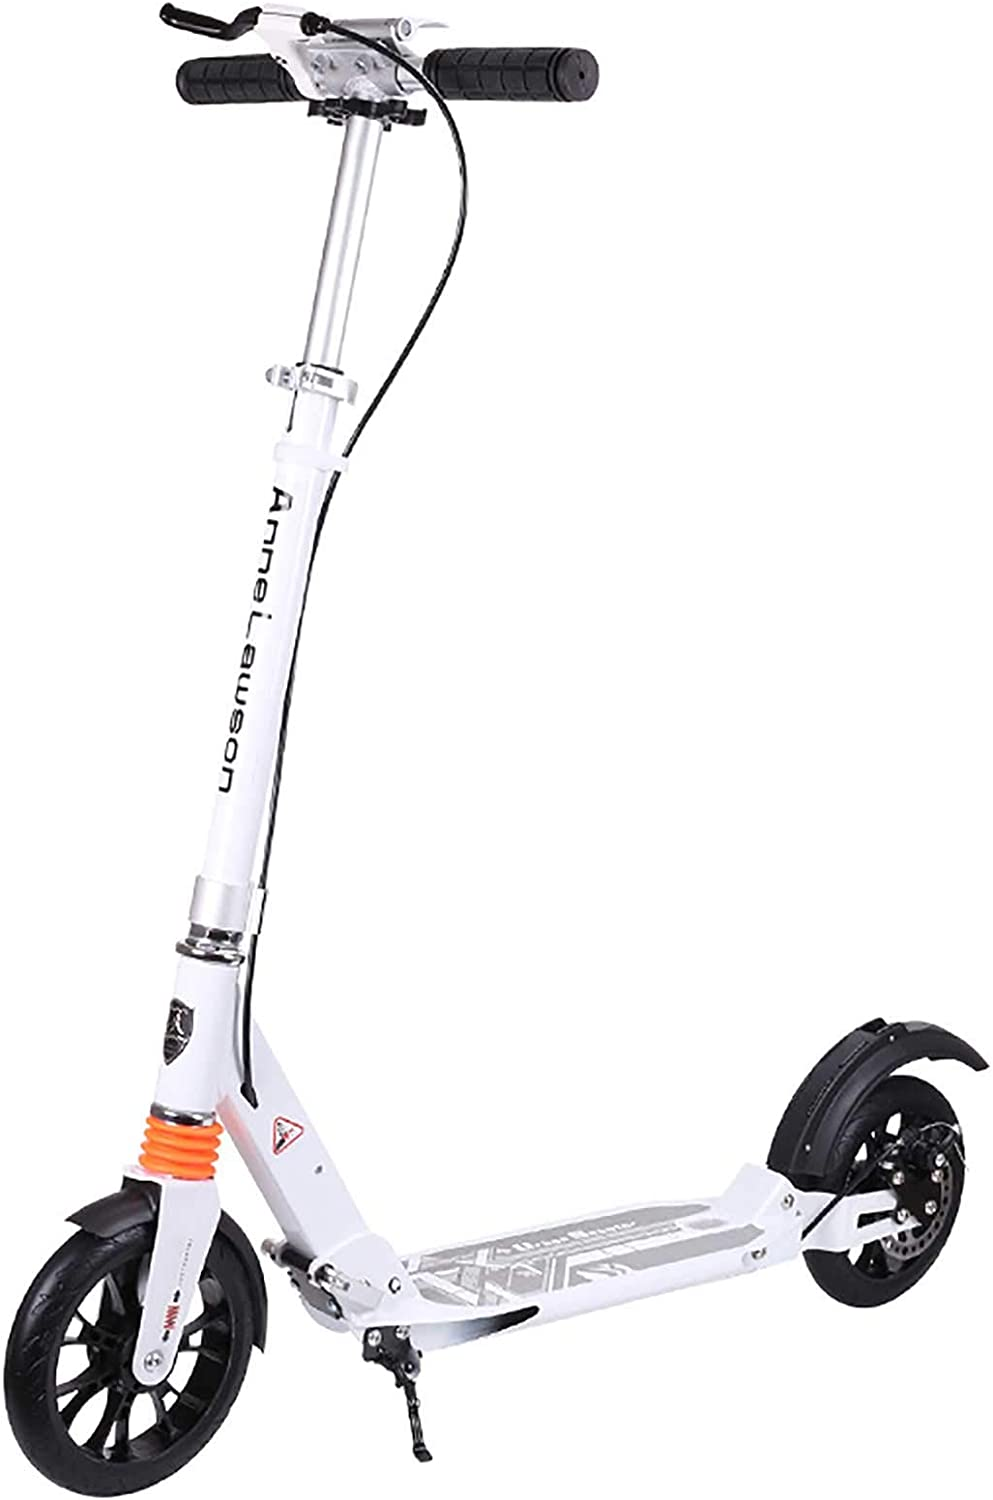 GAOPANG Scooter for Spring new work Ultra-Cheap Deals Kids Kick Teens and Adults with